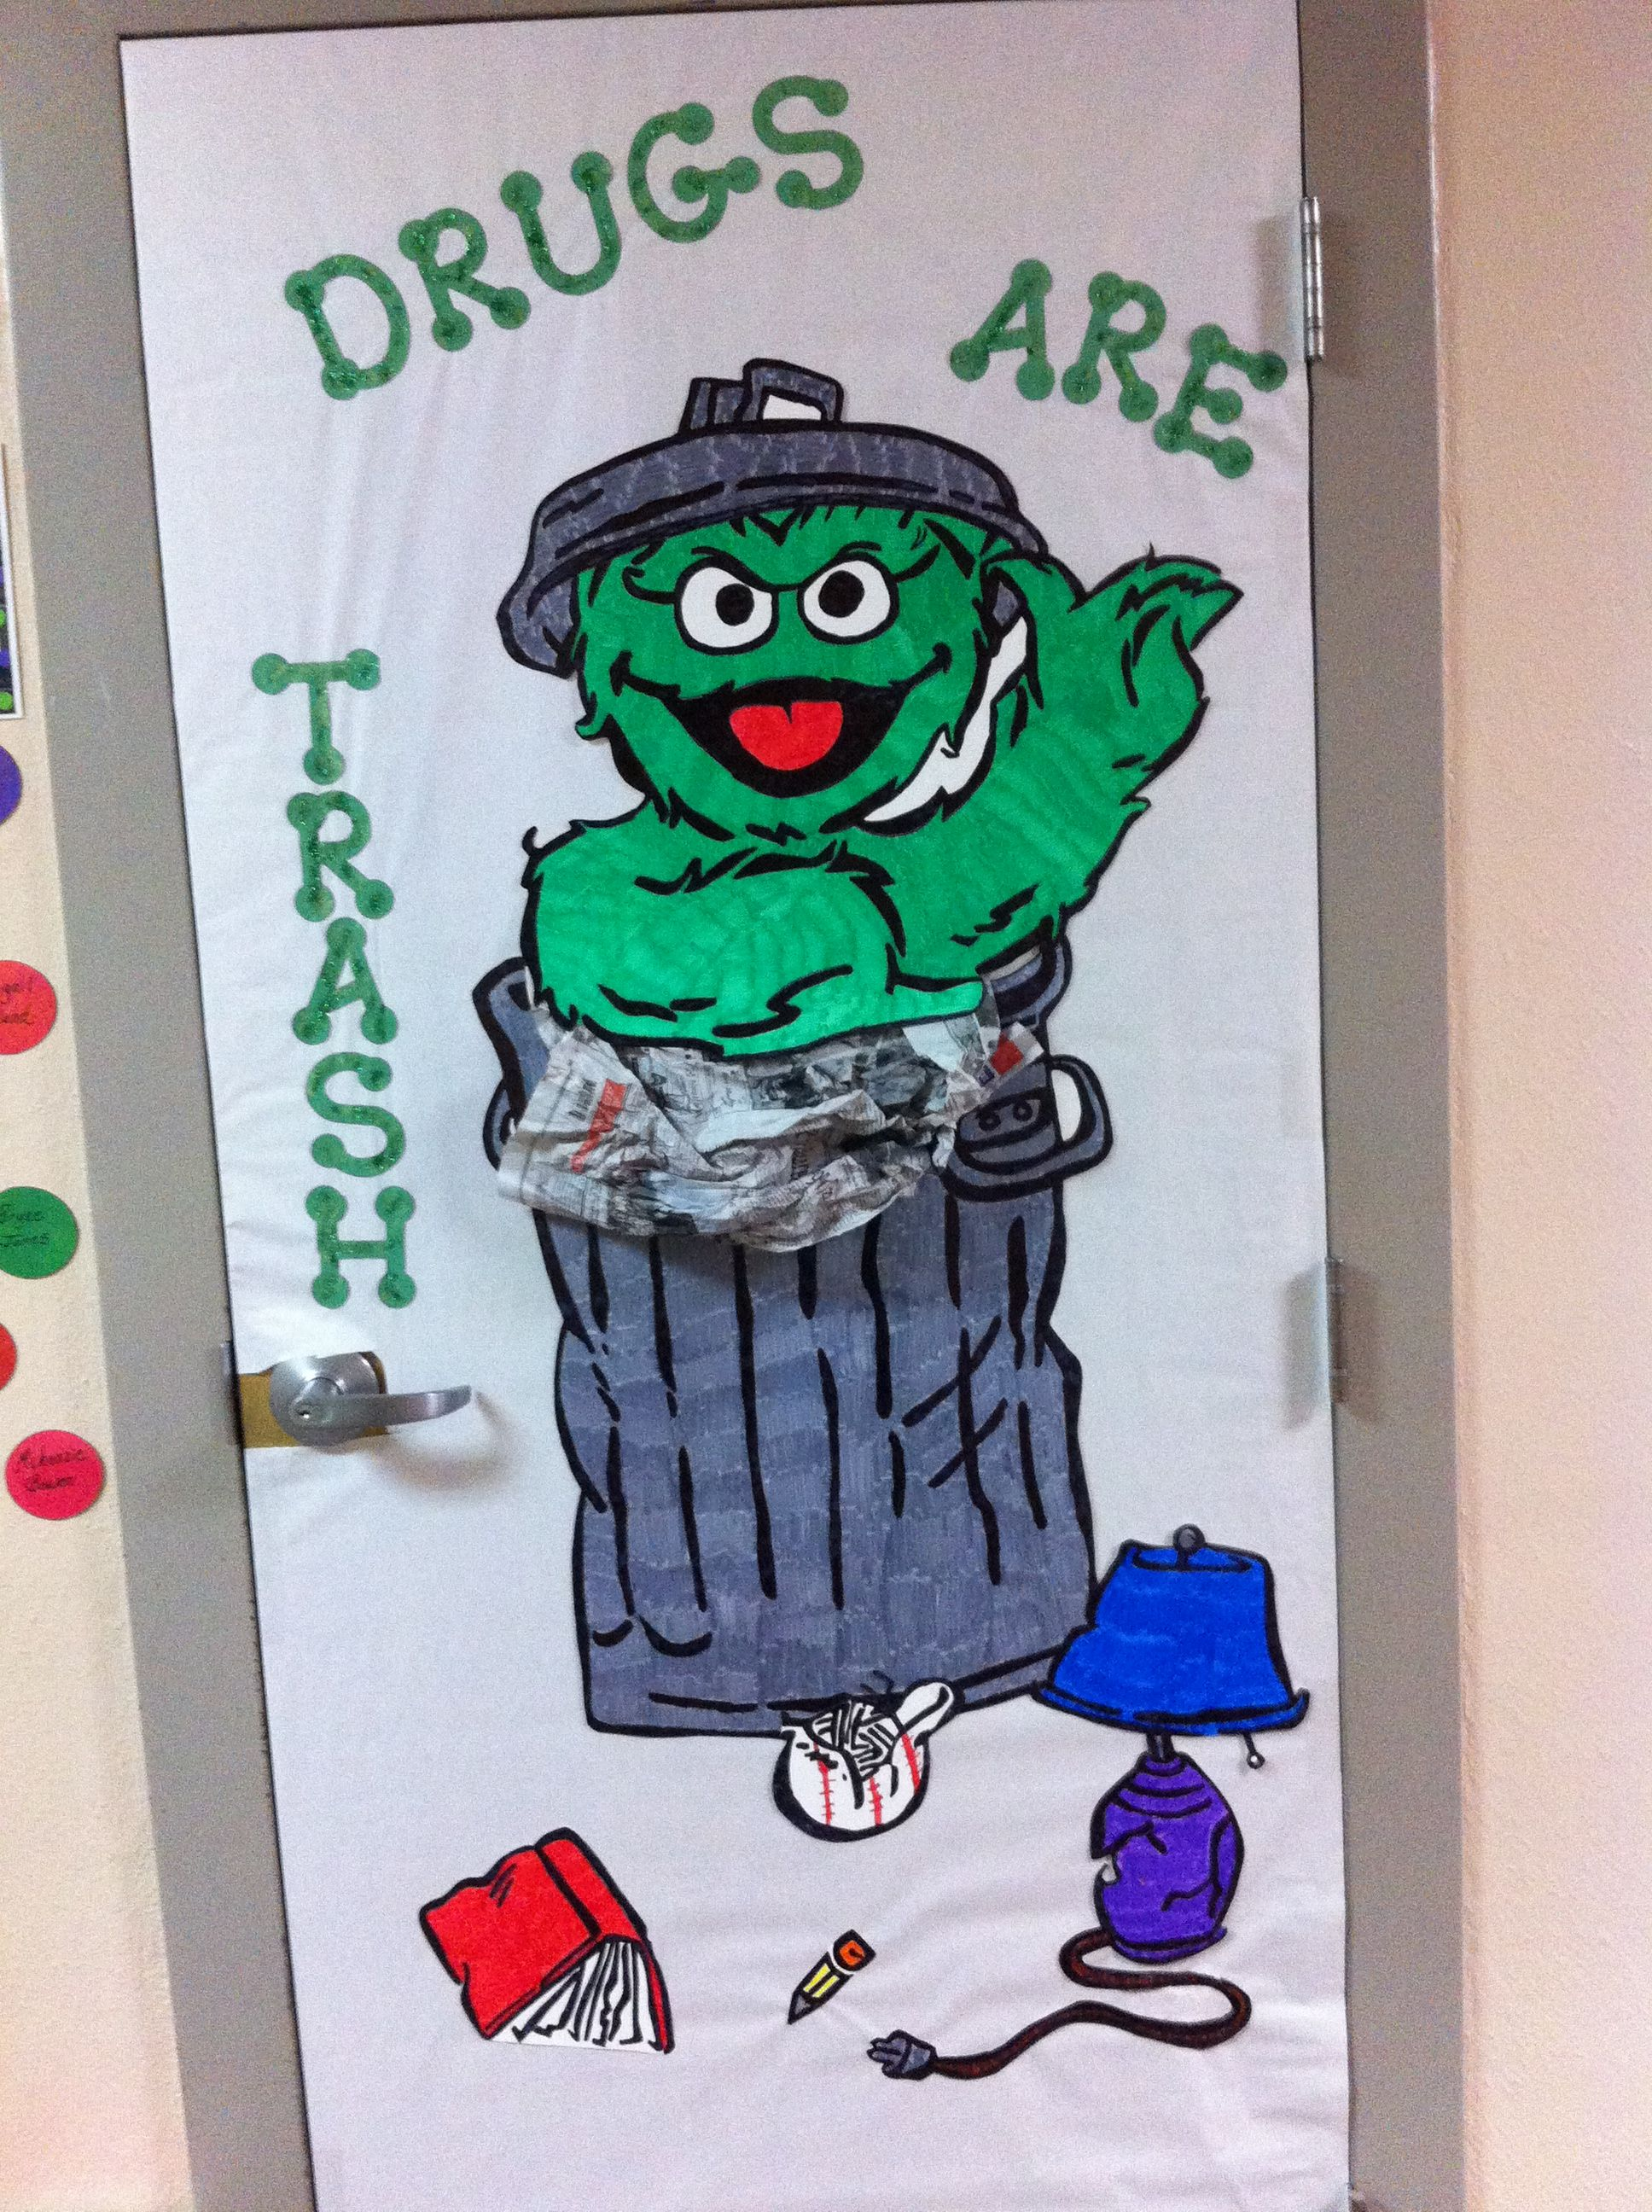 Red ribbon week door decorating inspiration enter your best red red ribbon week door decorating inspiration enter your best red ribbon week door decorating theme vtopaller Choice Image